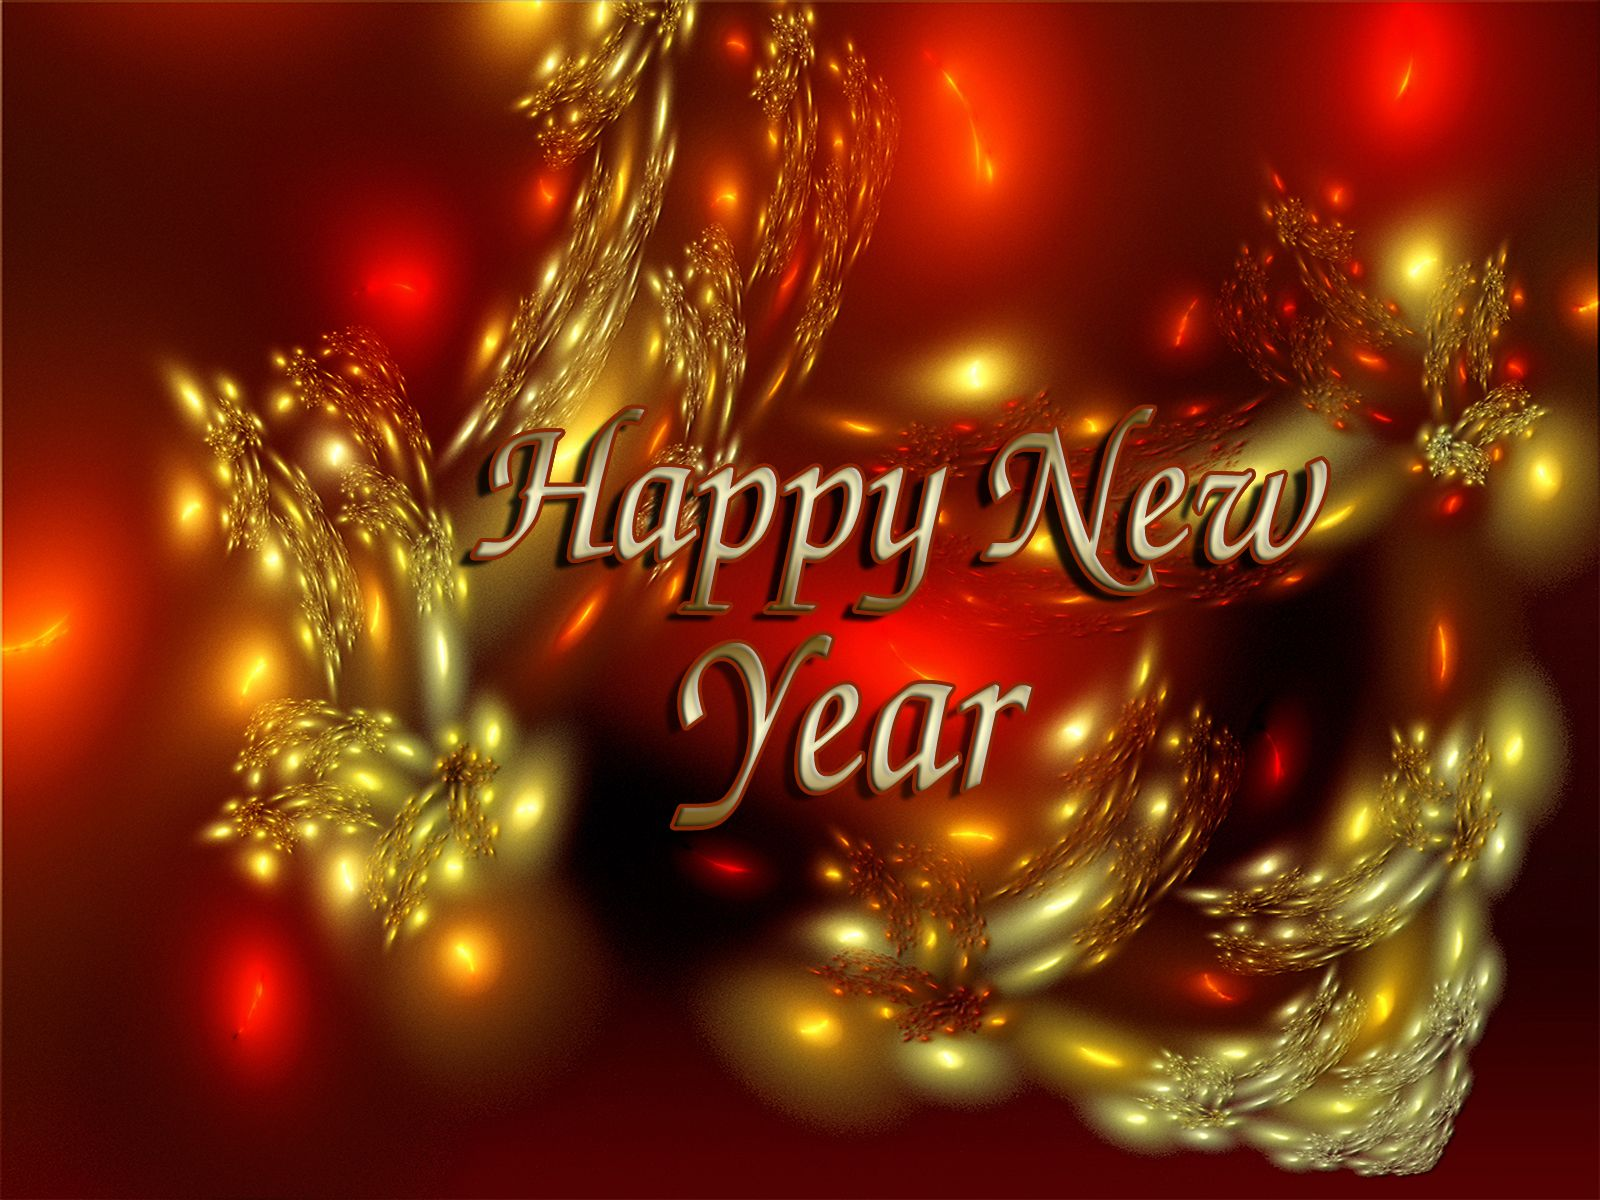 free new years wallpaper for your desktop happy new year pictures happy new year images happy new year wallpaper happy new year pictures